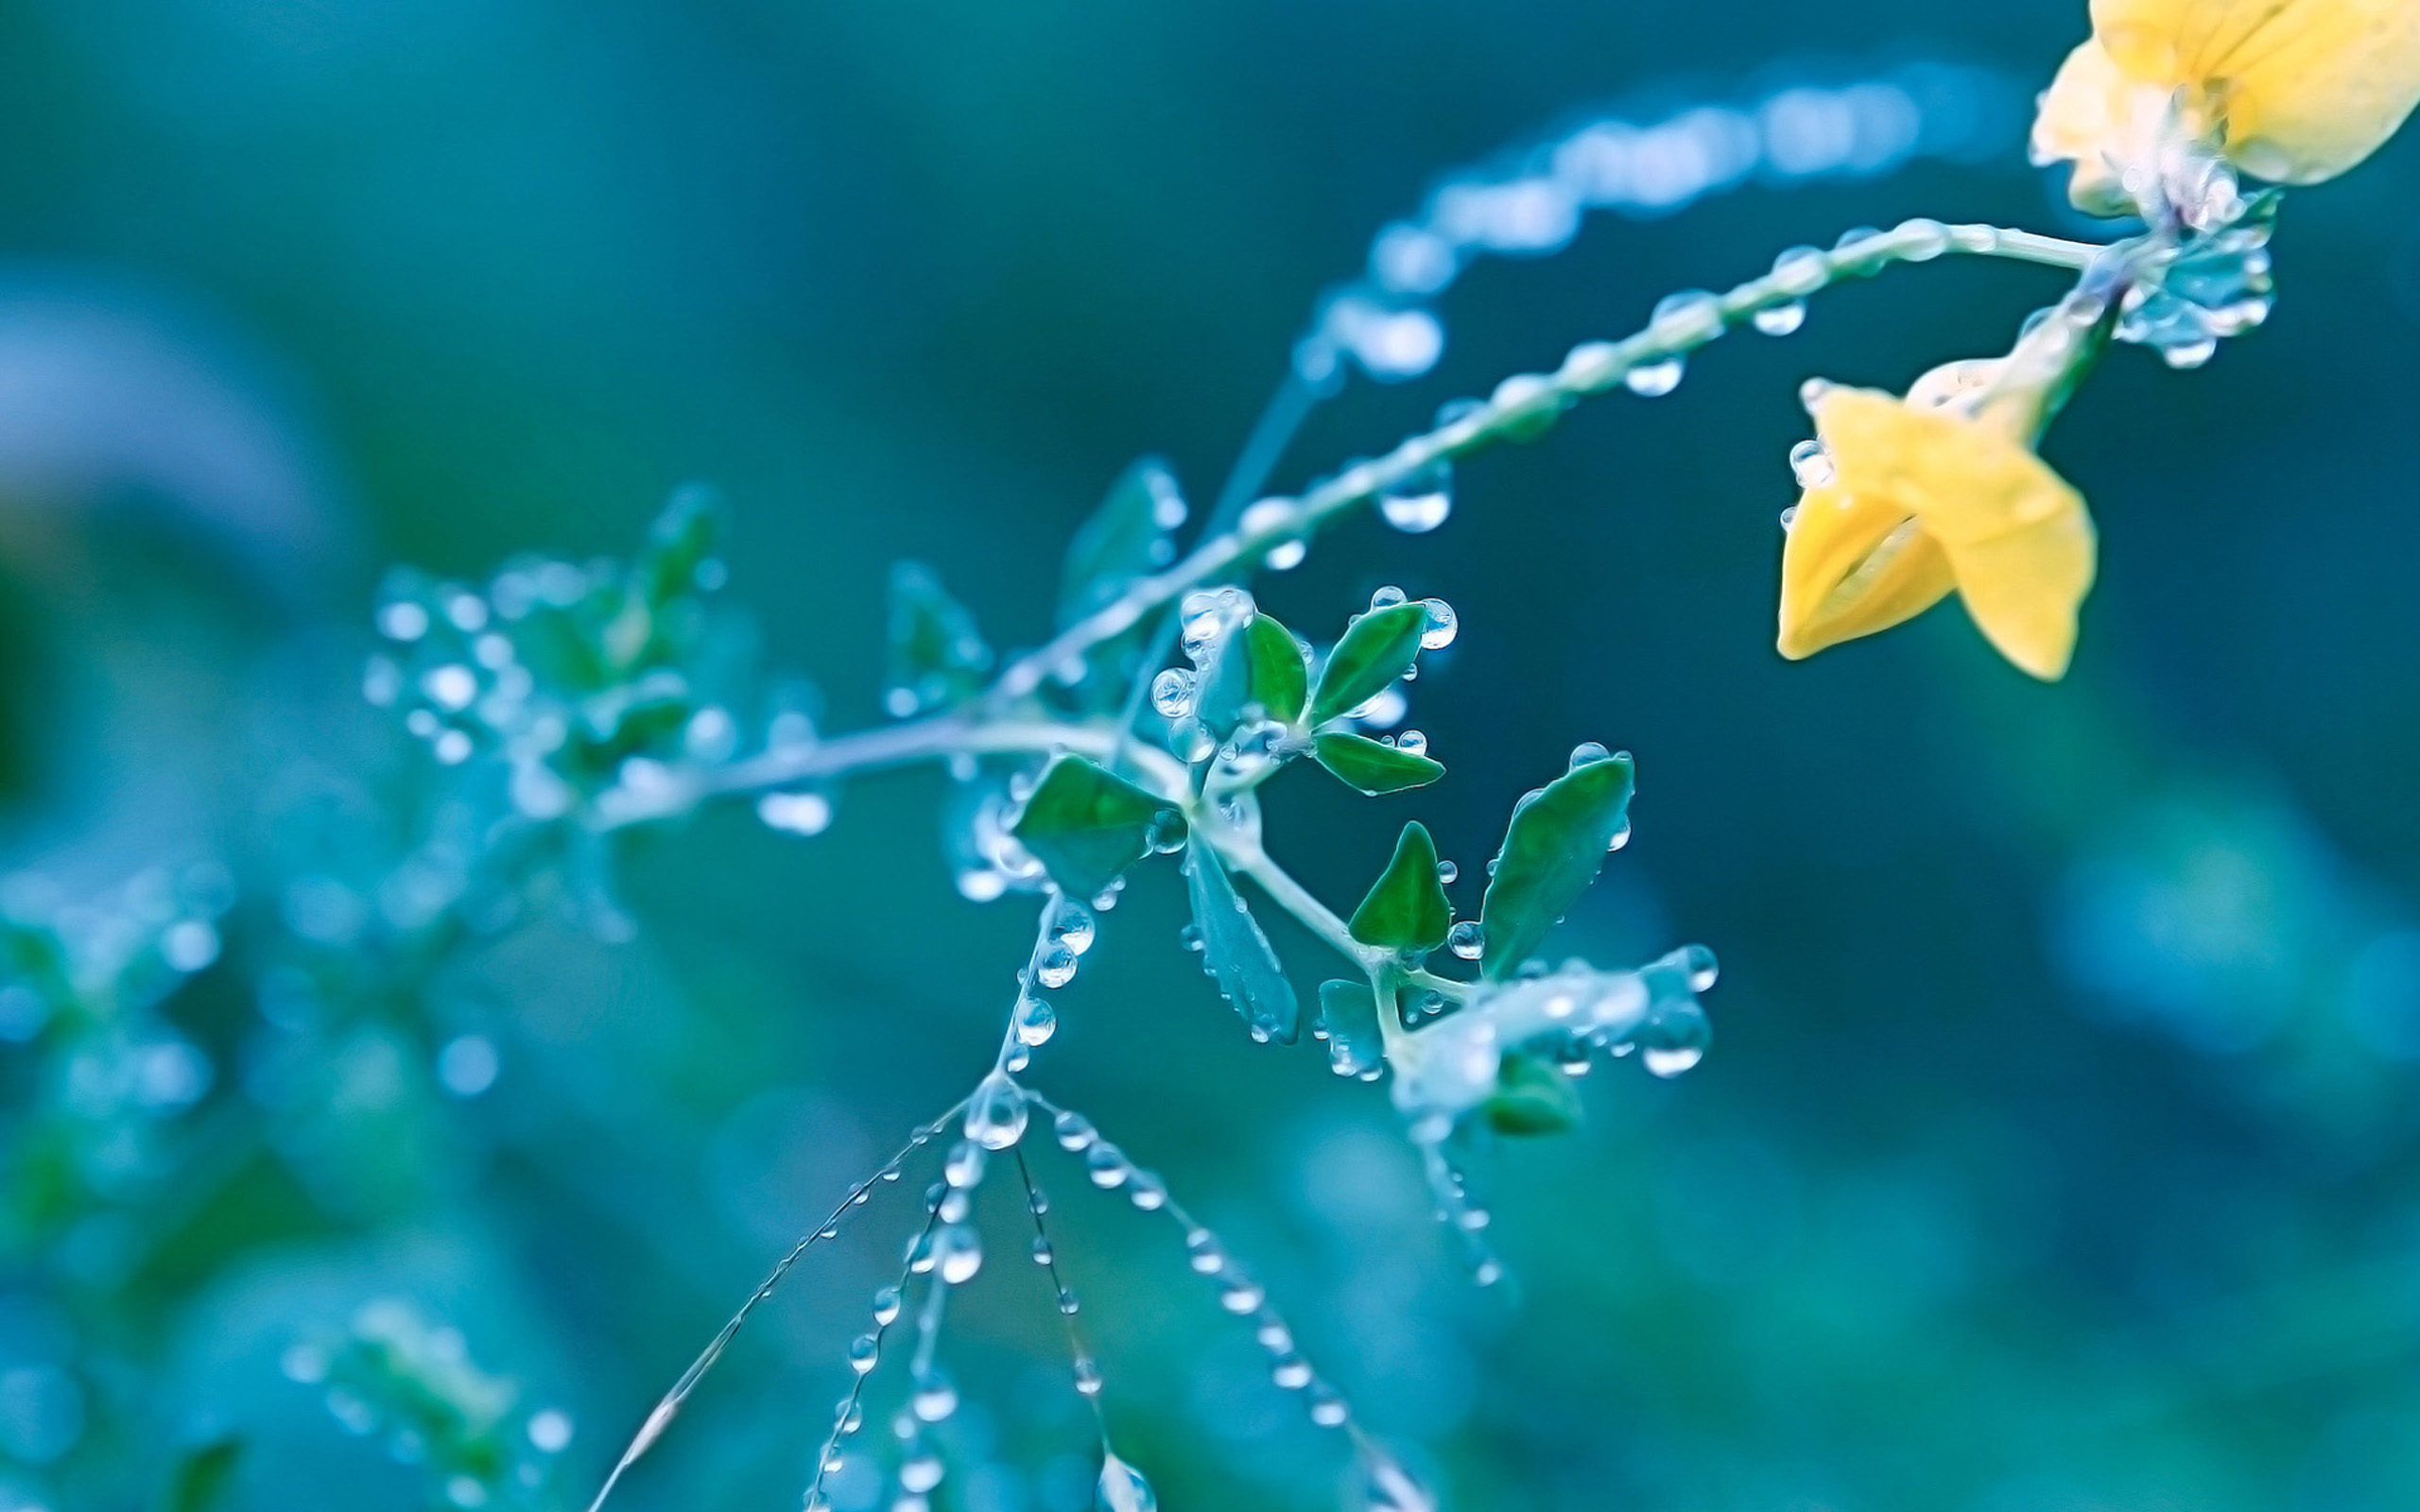 Drop Of Water In Yellow Spring Flowers Wallpapers For Computer Desktop